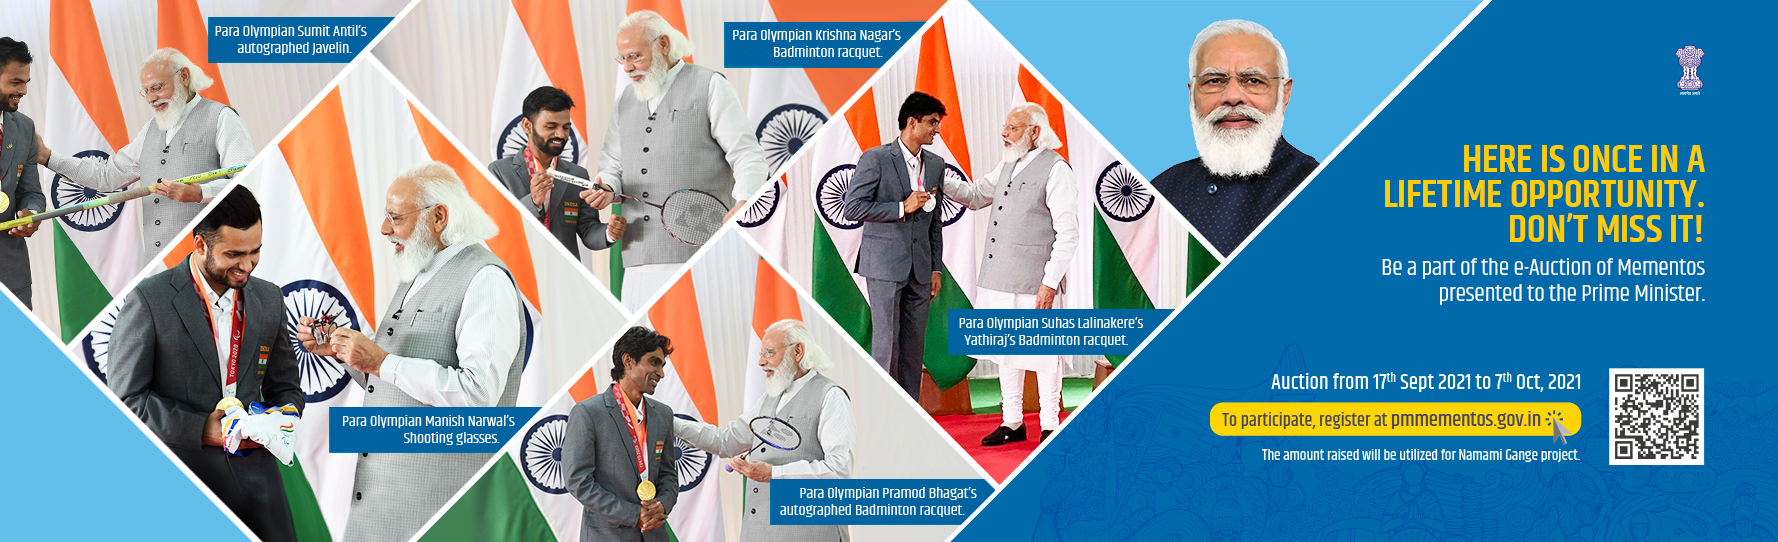 e-Auction of Mementos presented to the Prime Minister